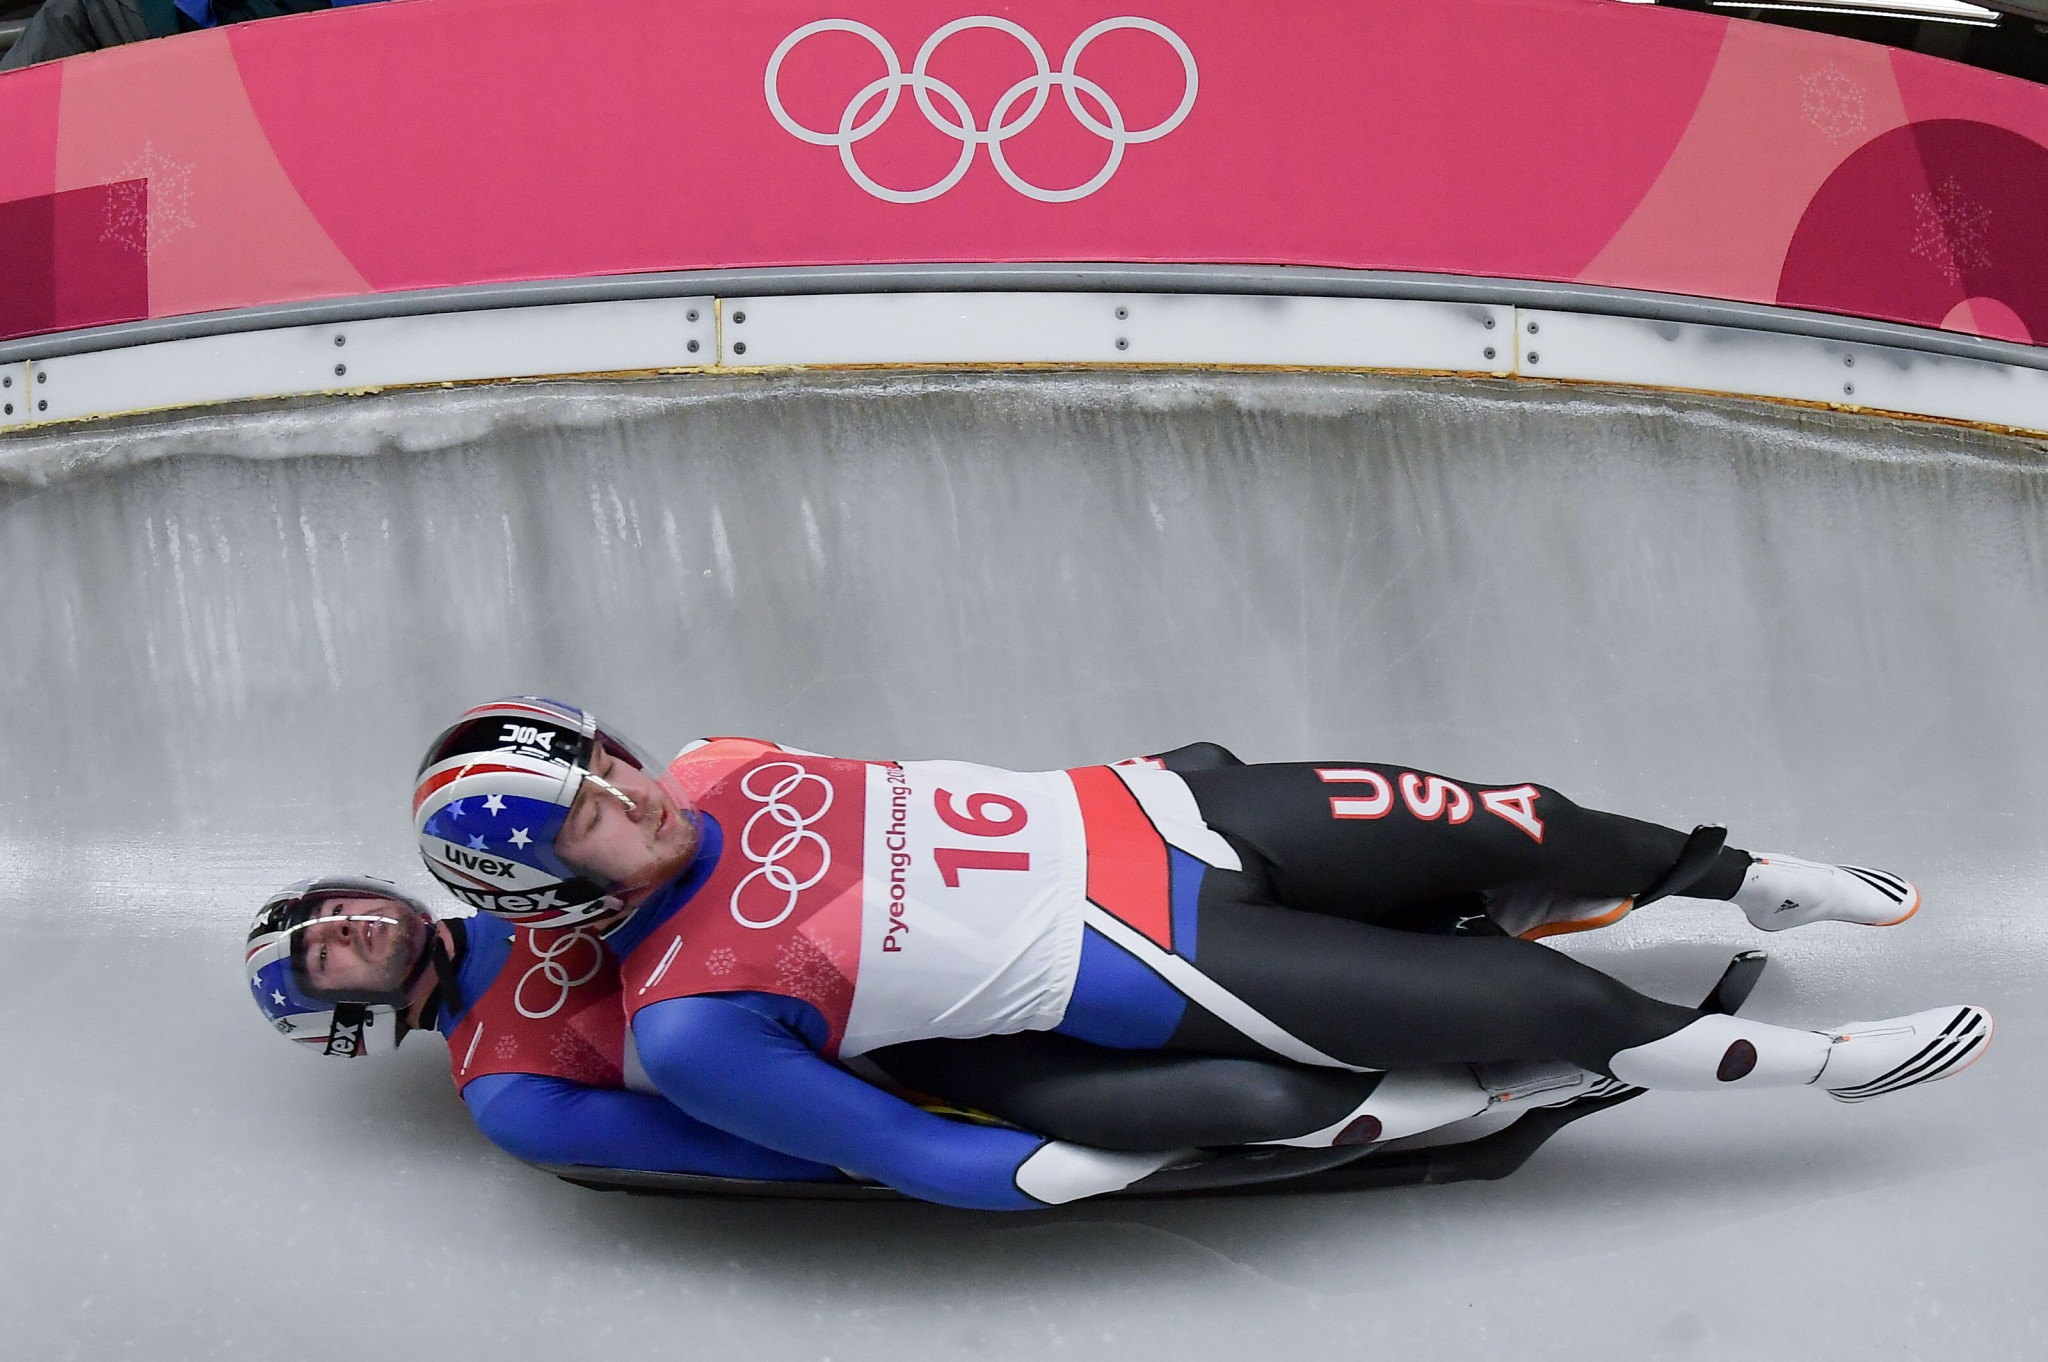 Women's doubles does not currently have a place on the Winter Olympic programme ©Getty Images